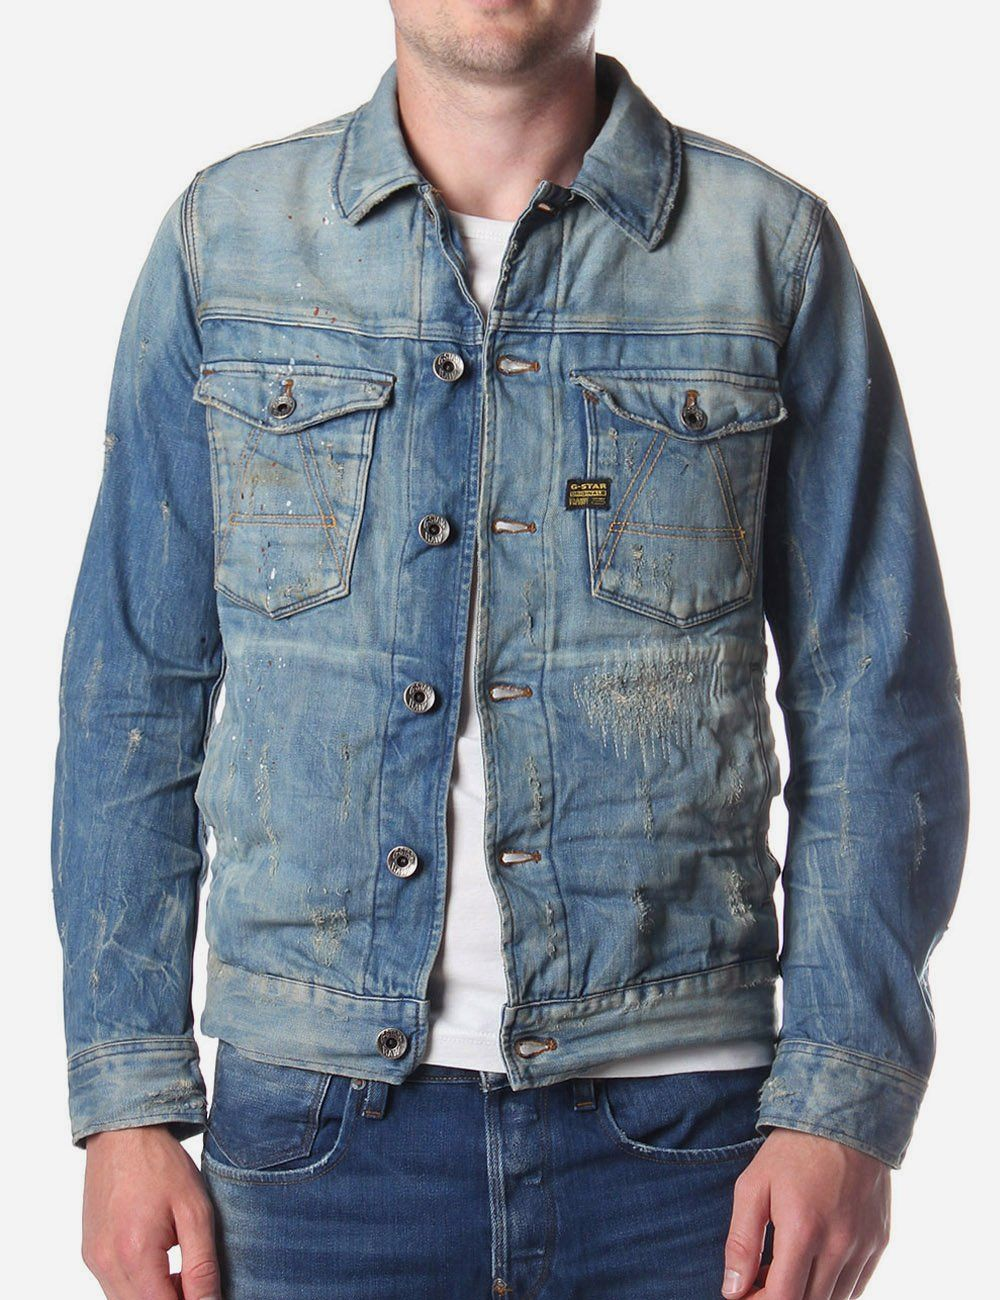 A Crotch Men's Denim Jacket Denim